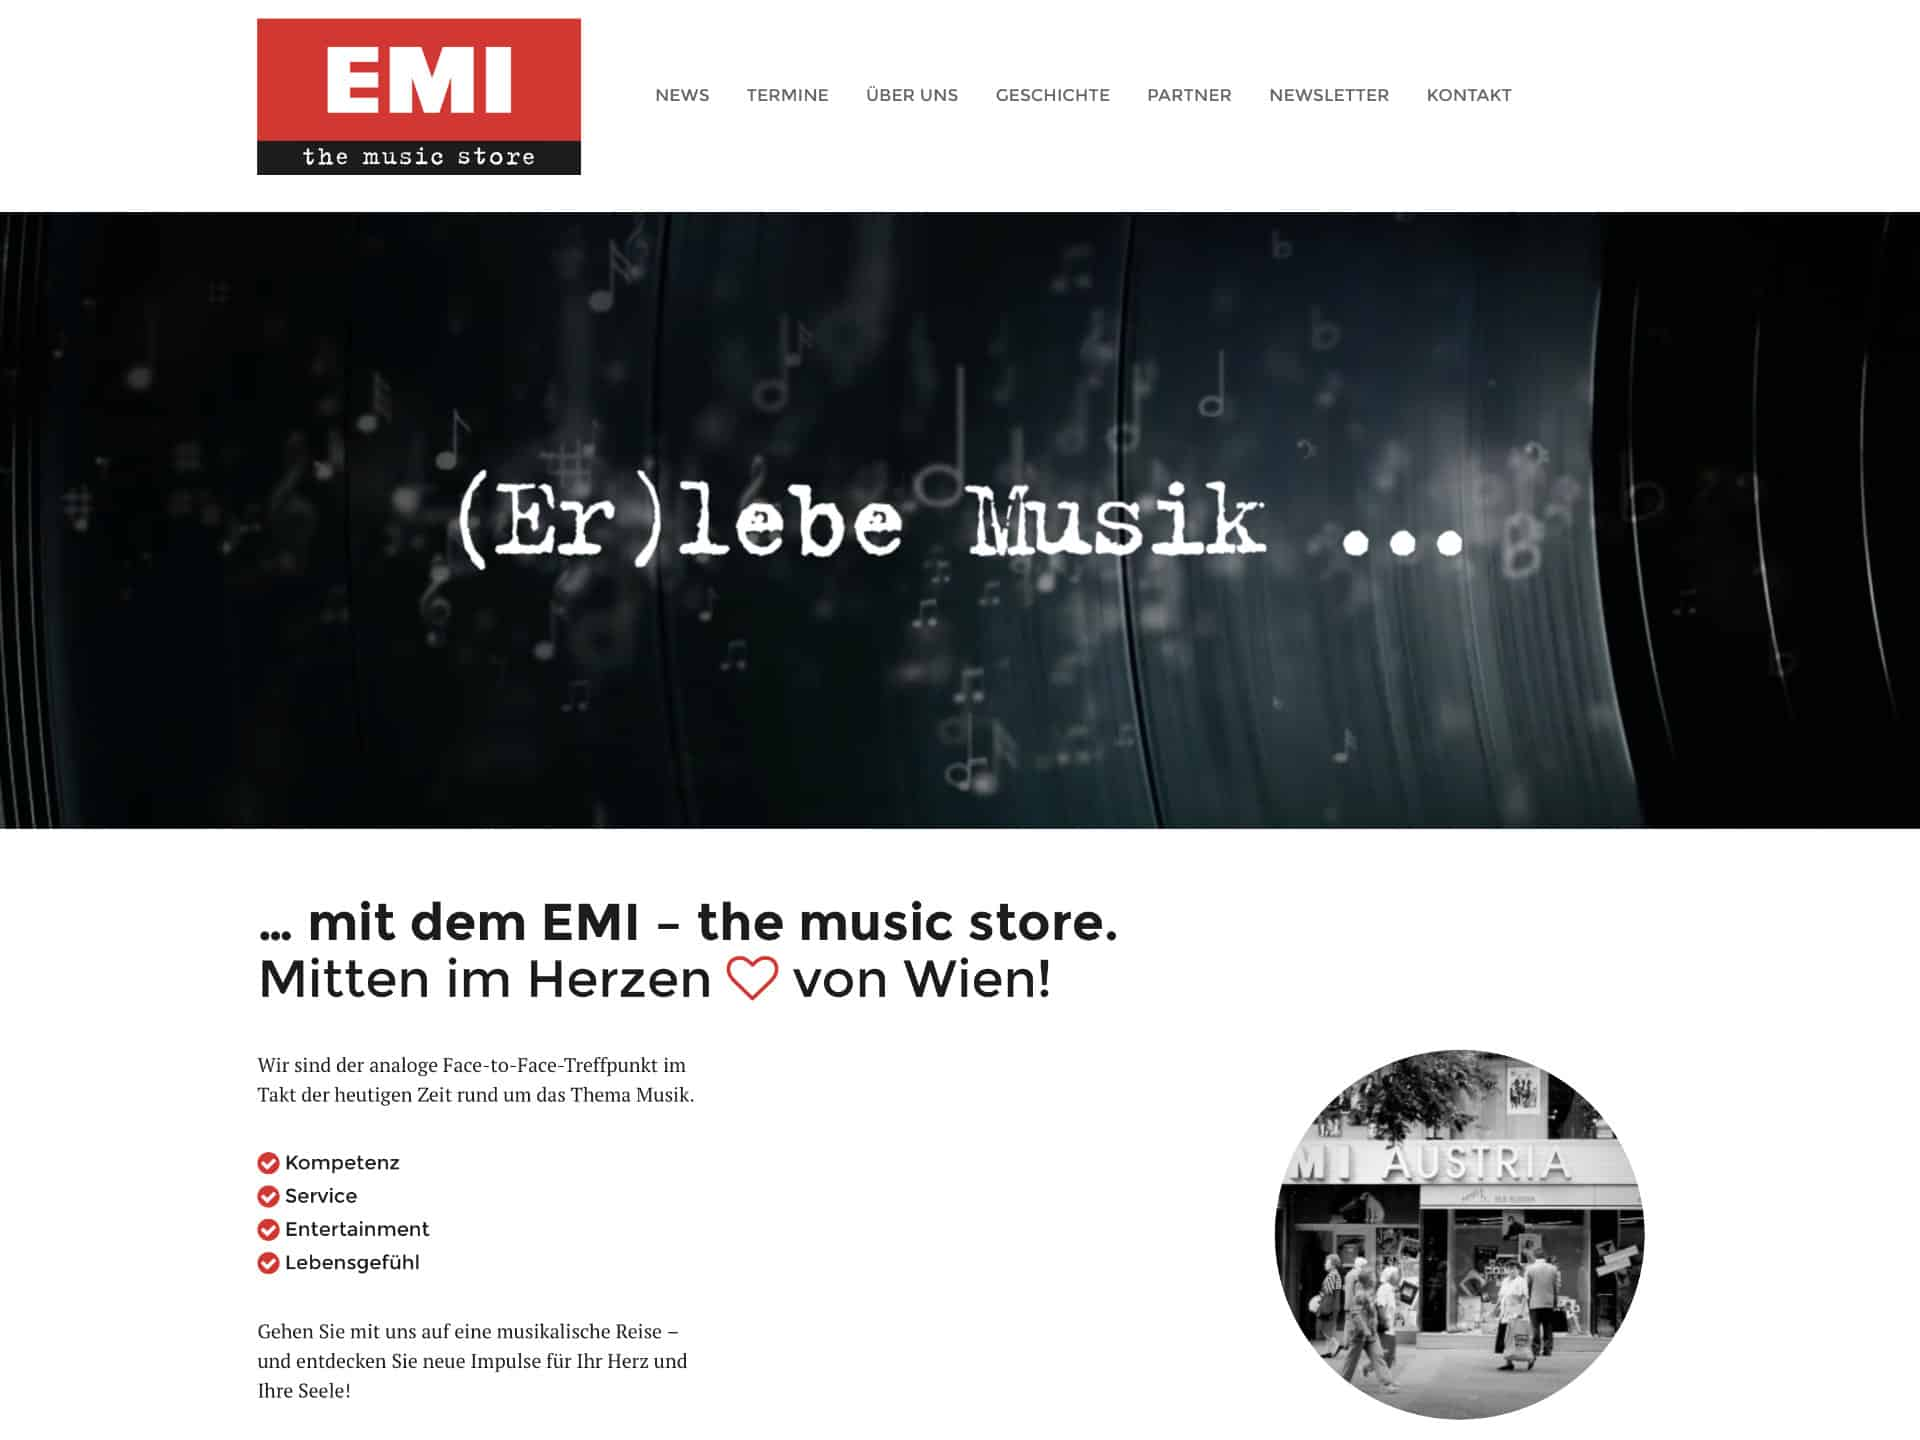 emi music store website